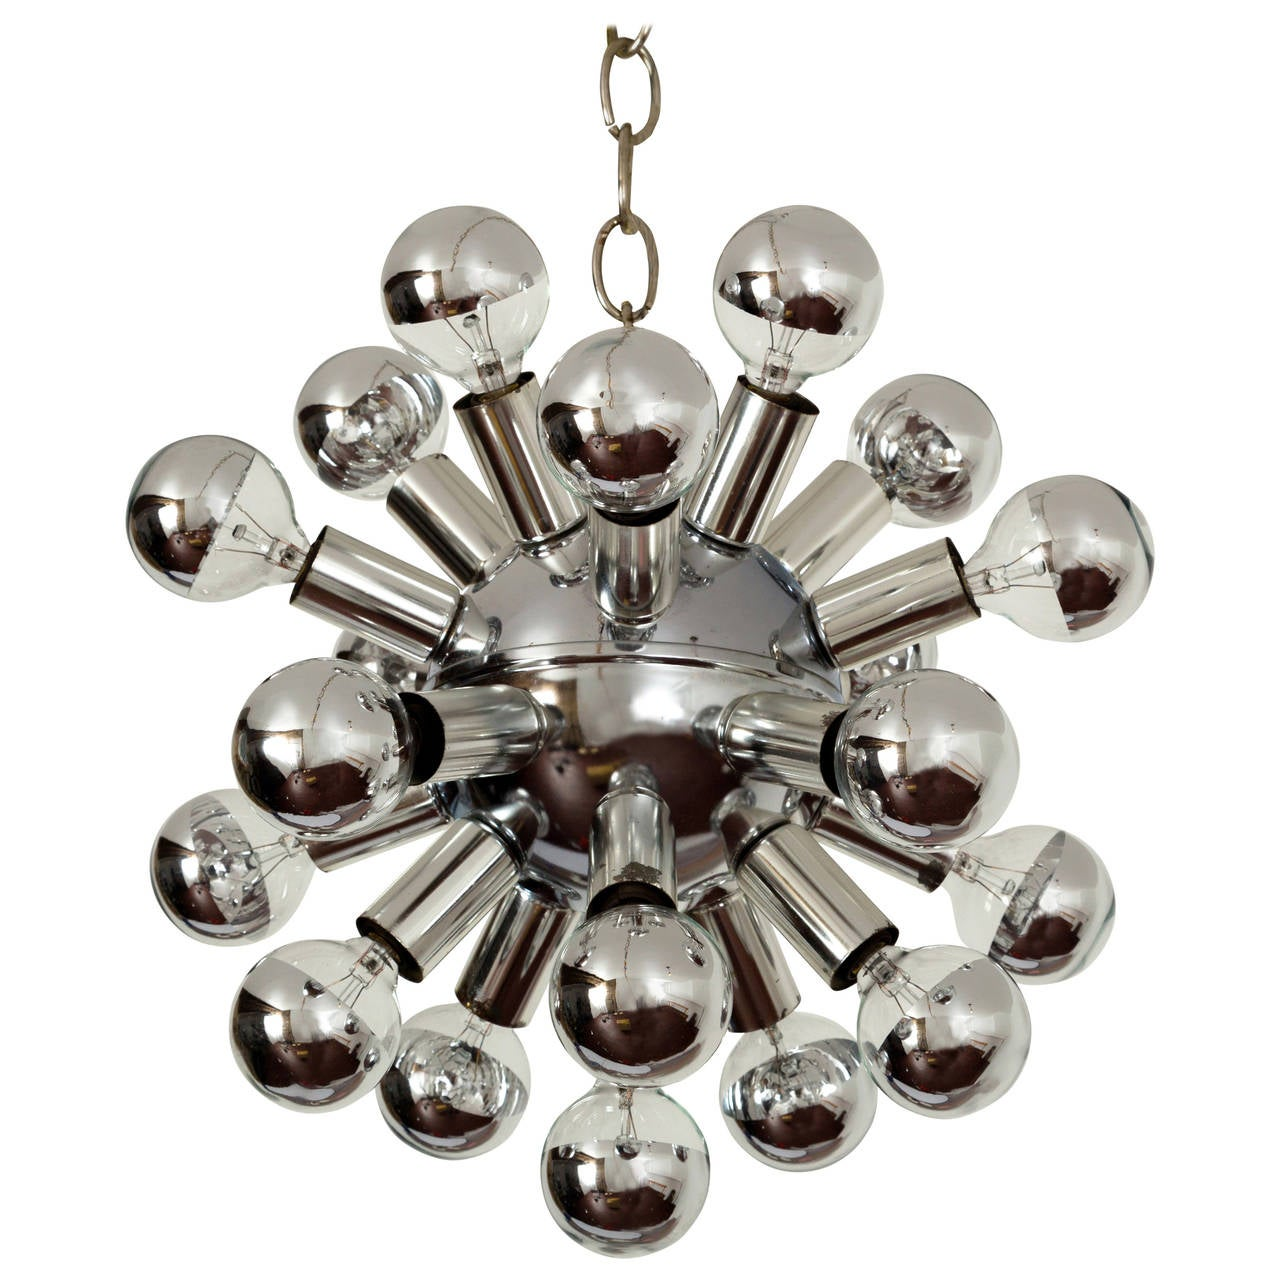 Small Sputnik Chandelier Light Fixture in Polished Chrome, 1960s